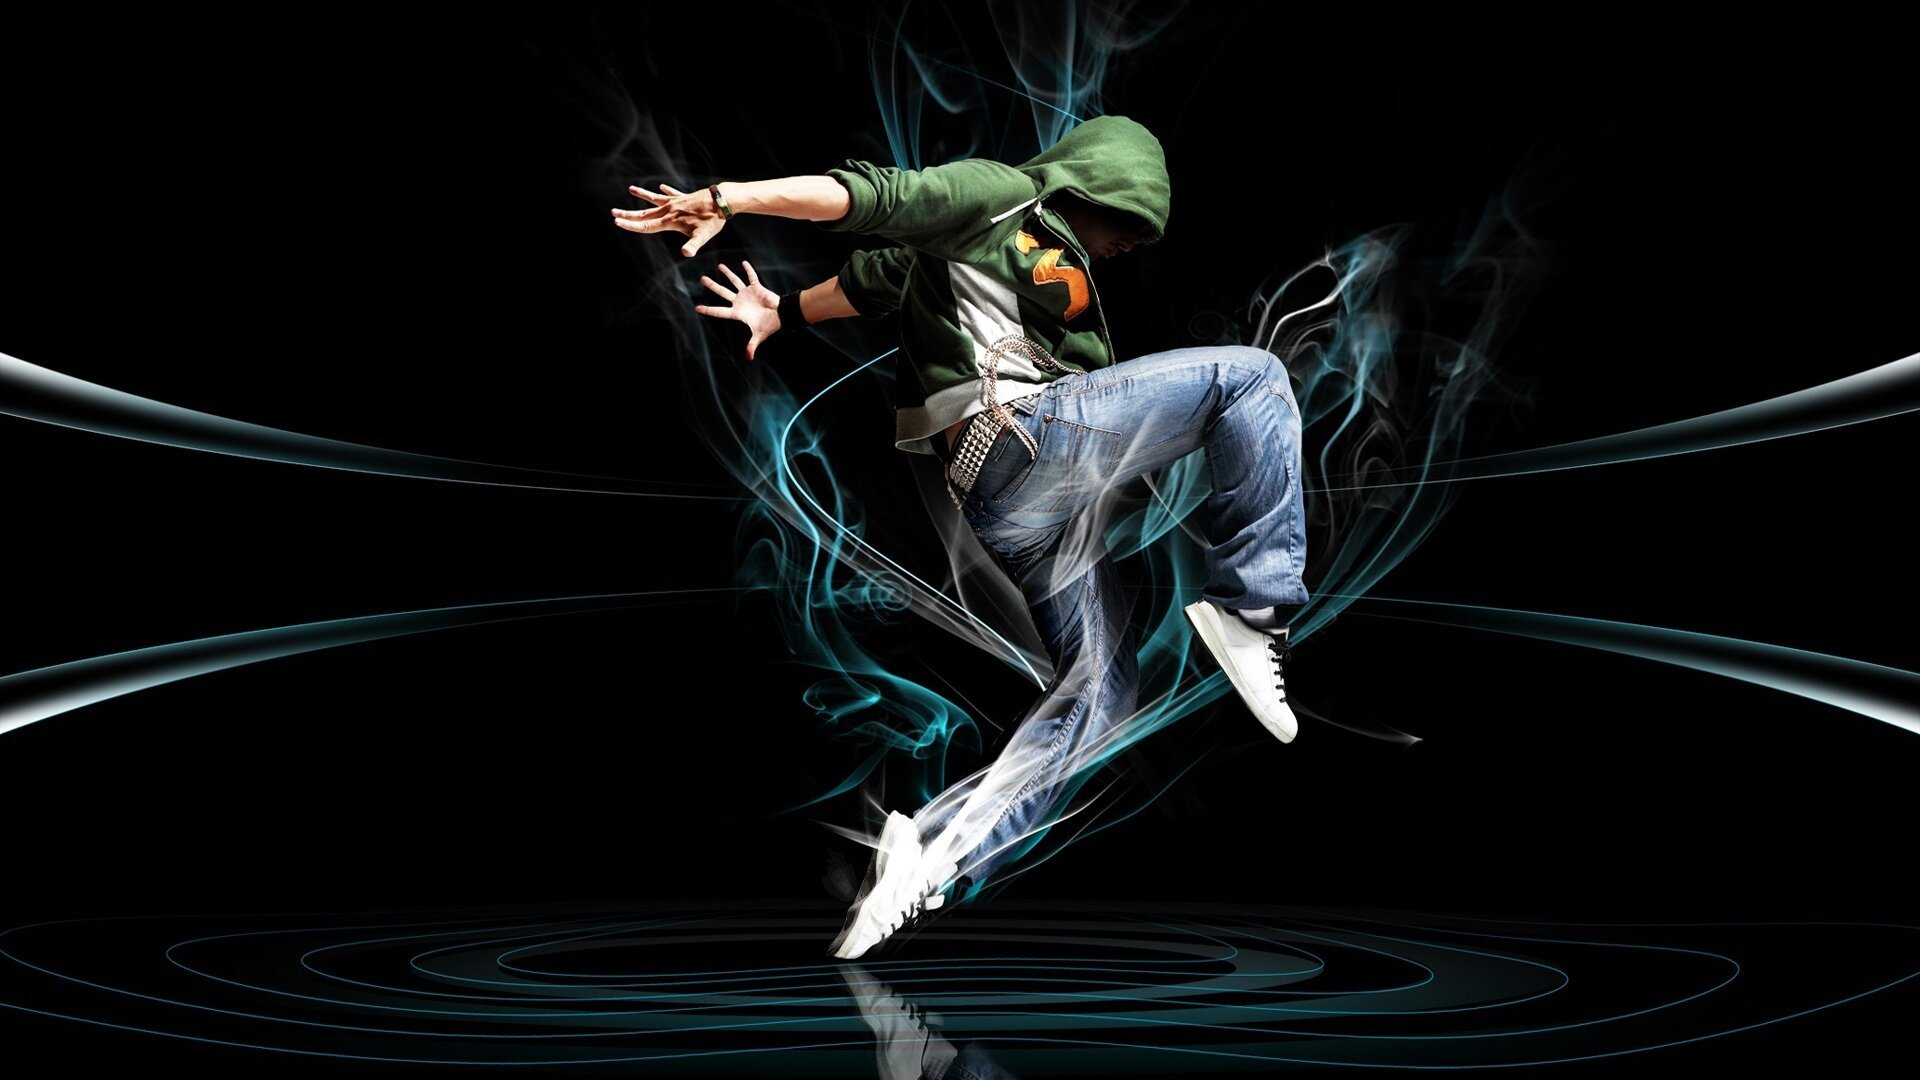 HIP HOP dance dancing music rap rapper urban pop gangsta 1920x1080